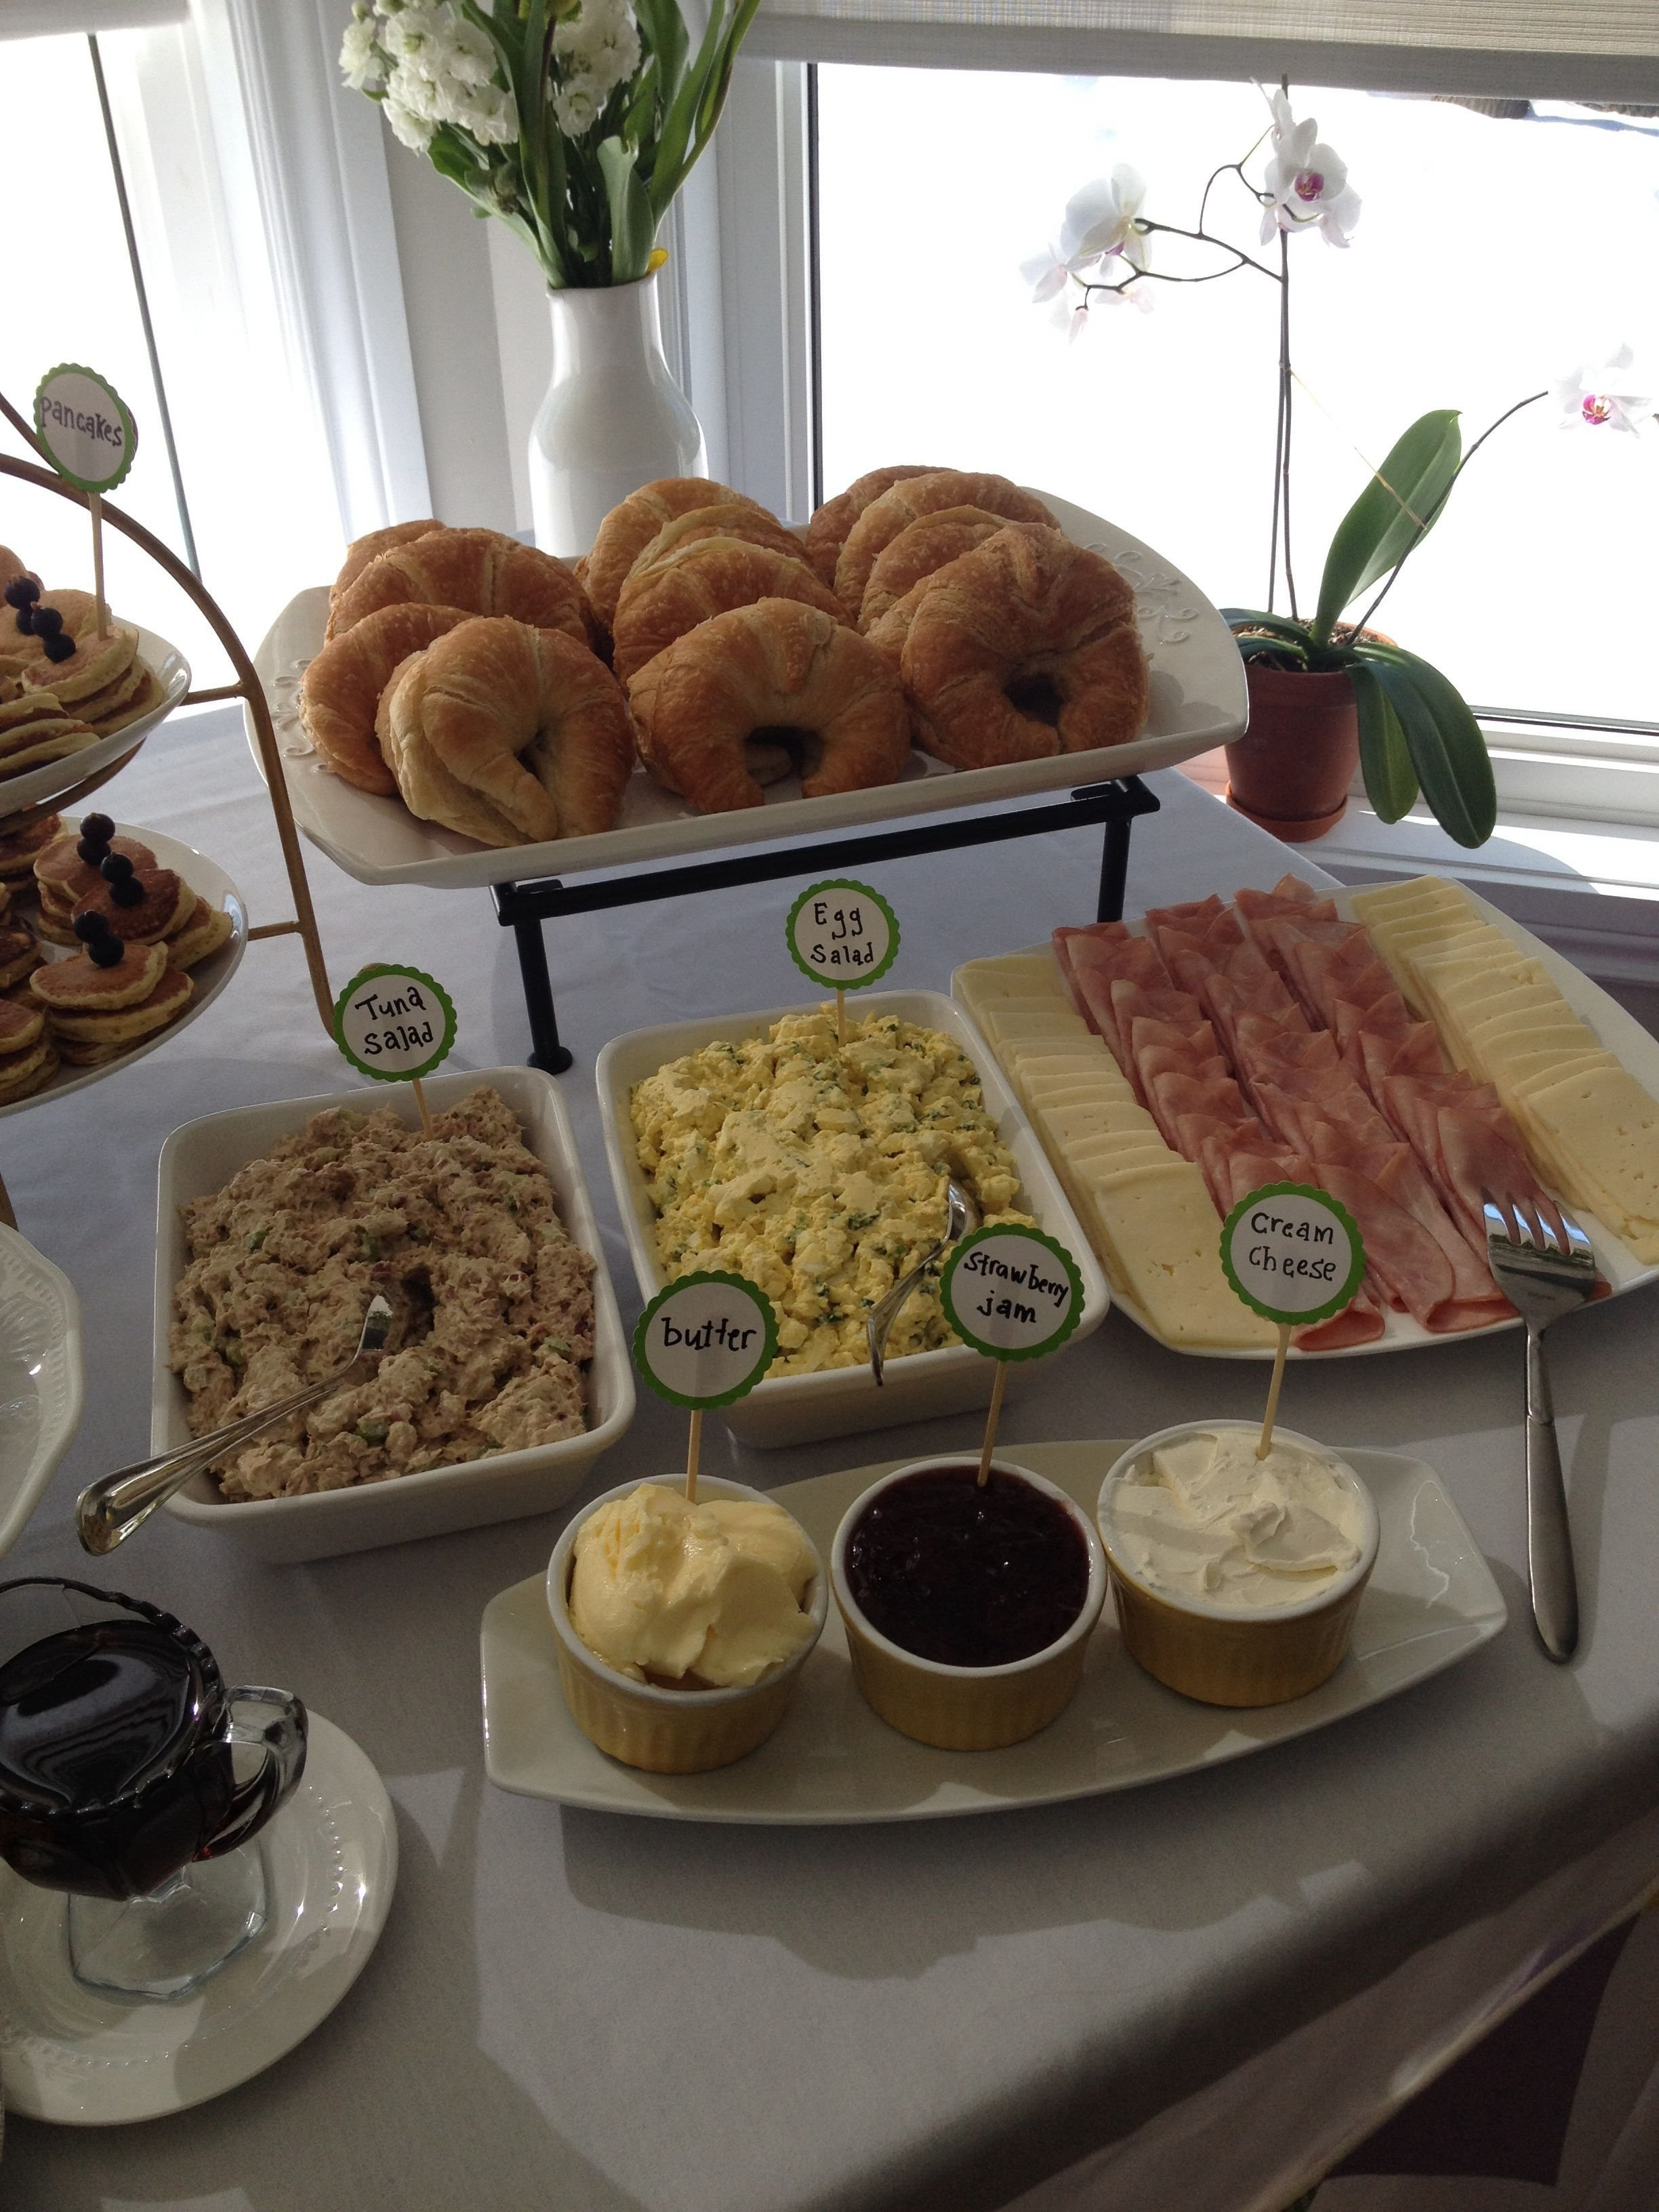 10 Stylish Baby Shower Food Menu Ideas croissant bar great baby shower brunch or lunch idea could do egg 2 2020